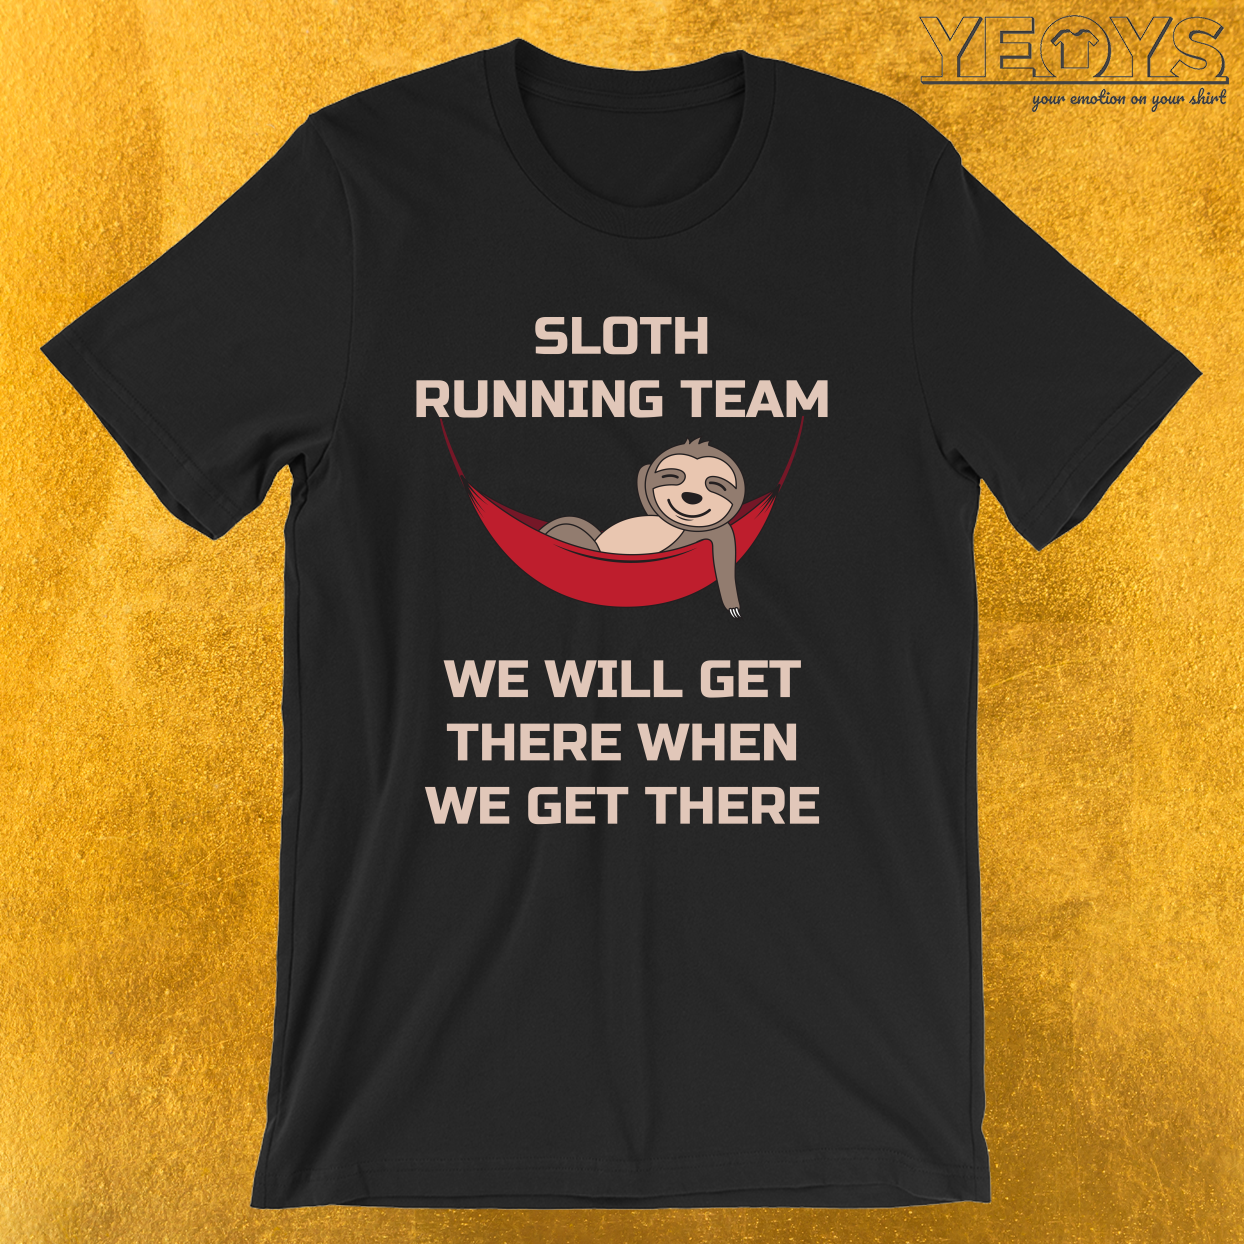 We Will Get There When We Get There – Sloth Running Team Tee